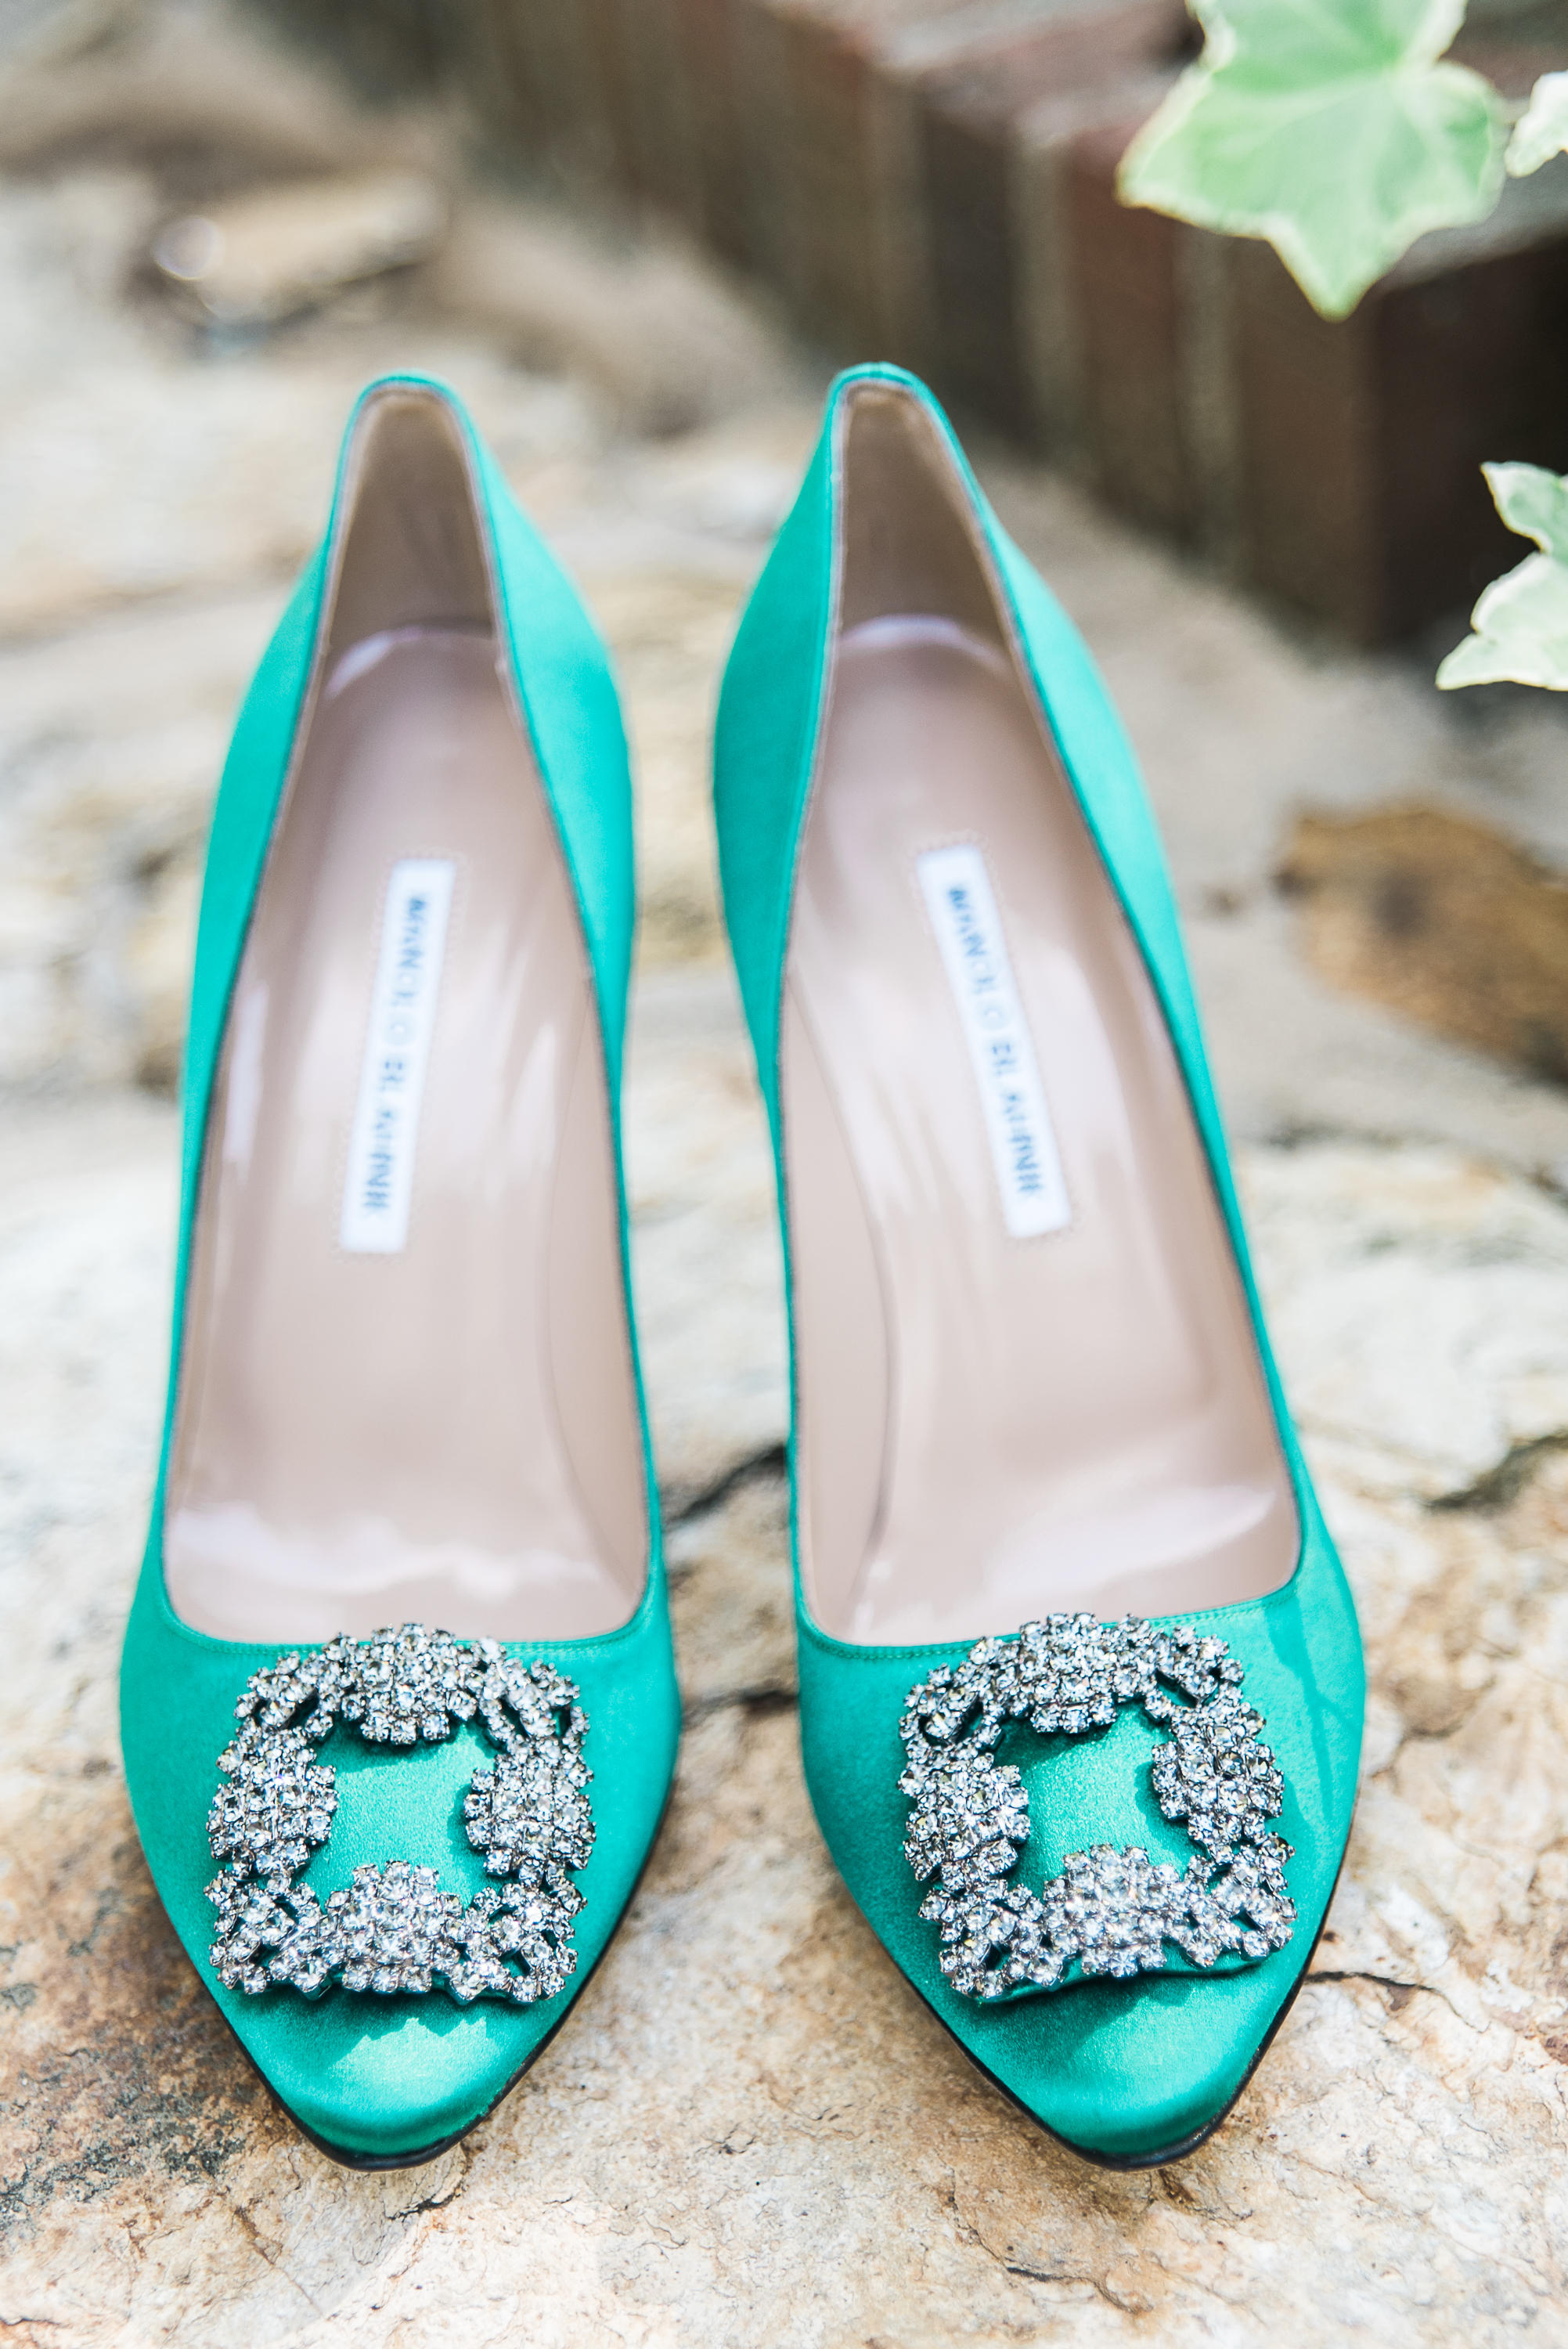 Manolo Blahnik green wedding shoes with buckle.